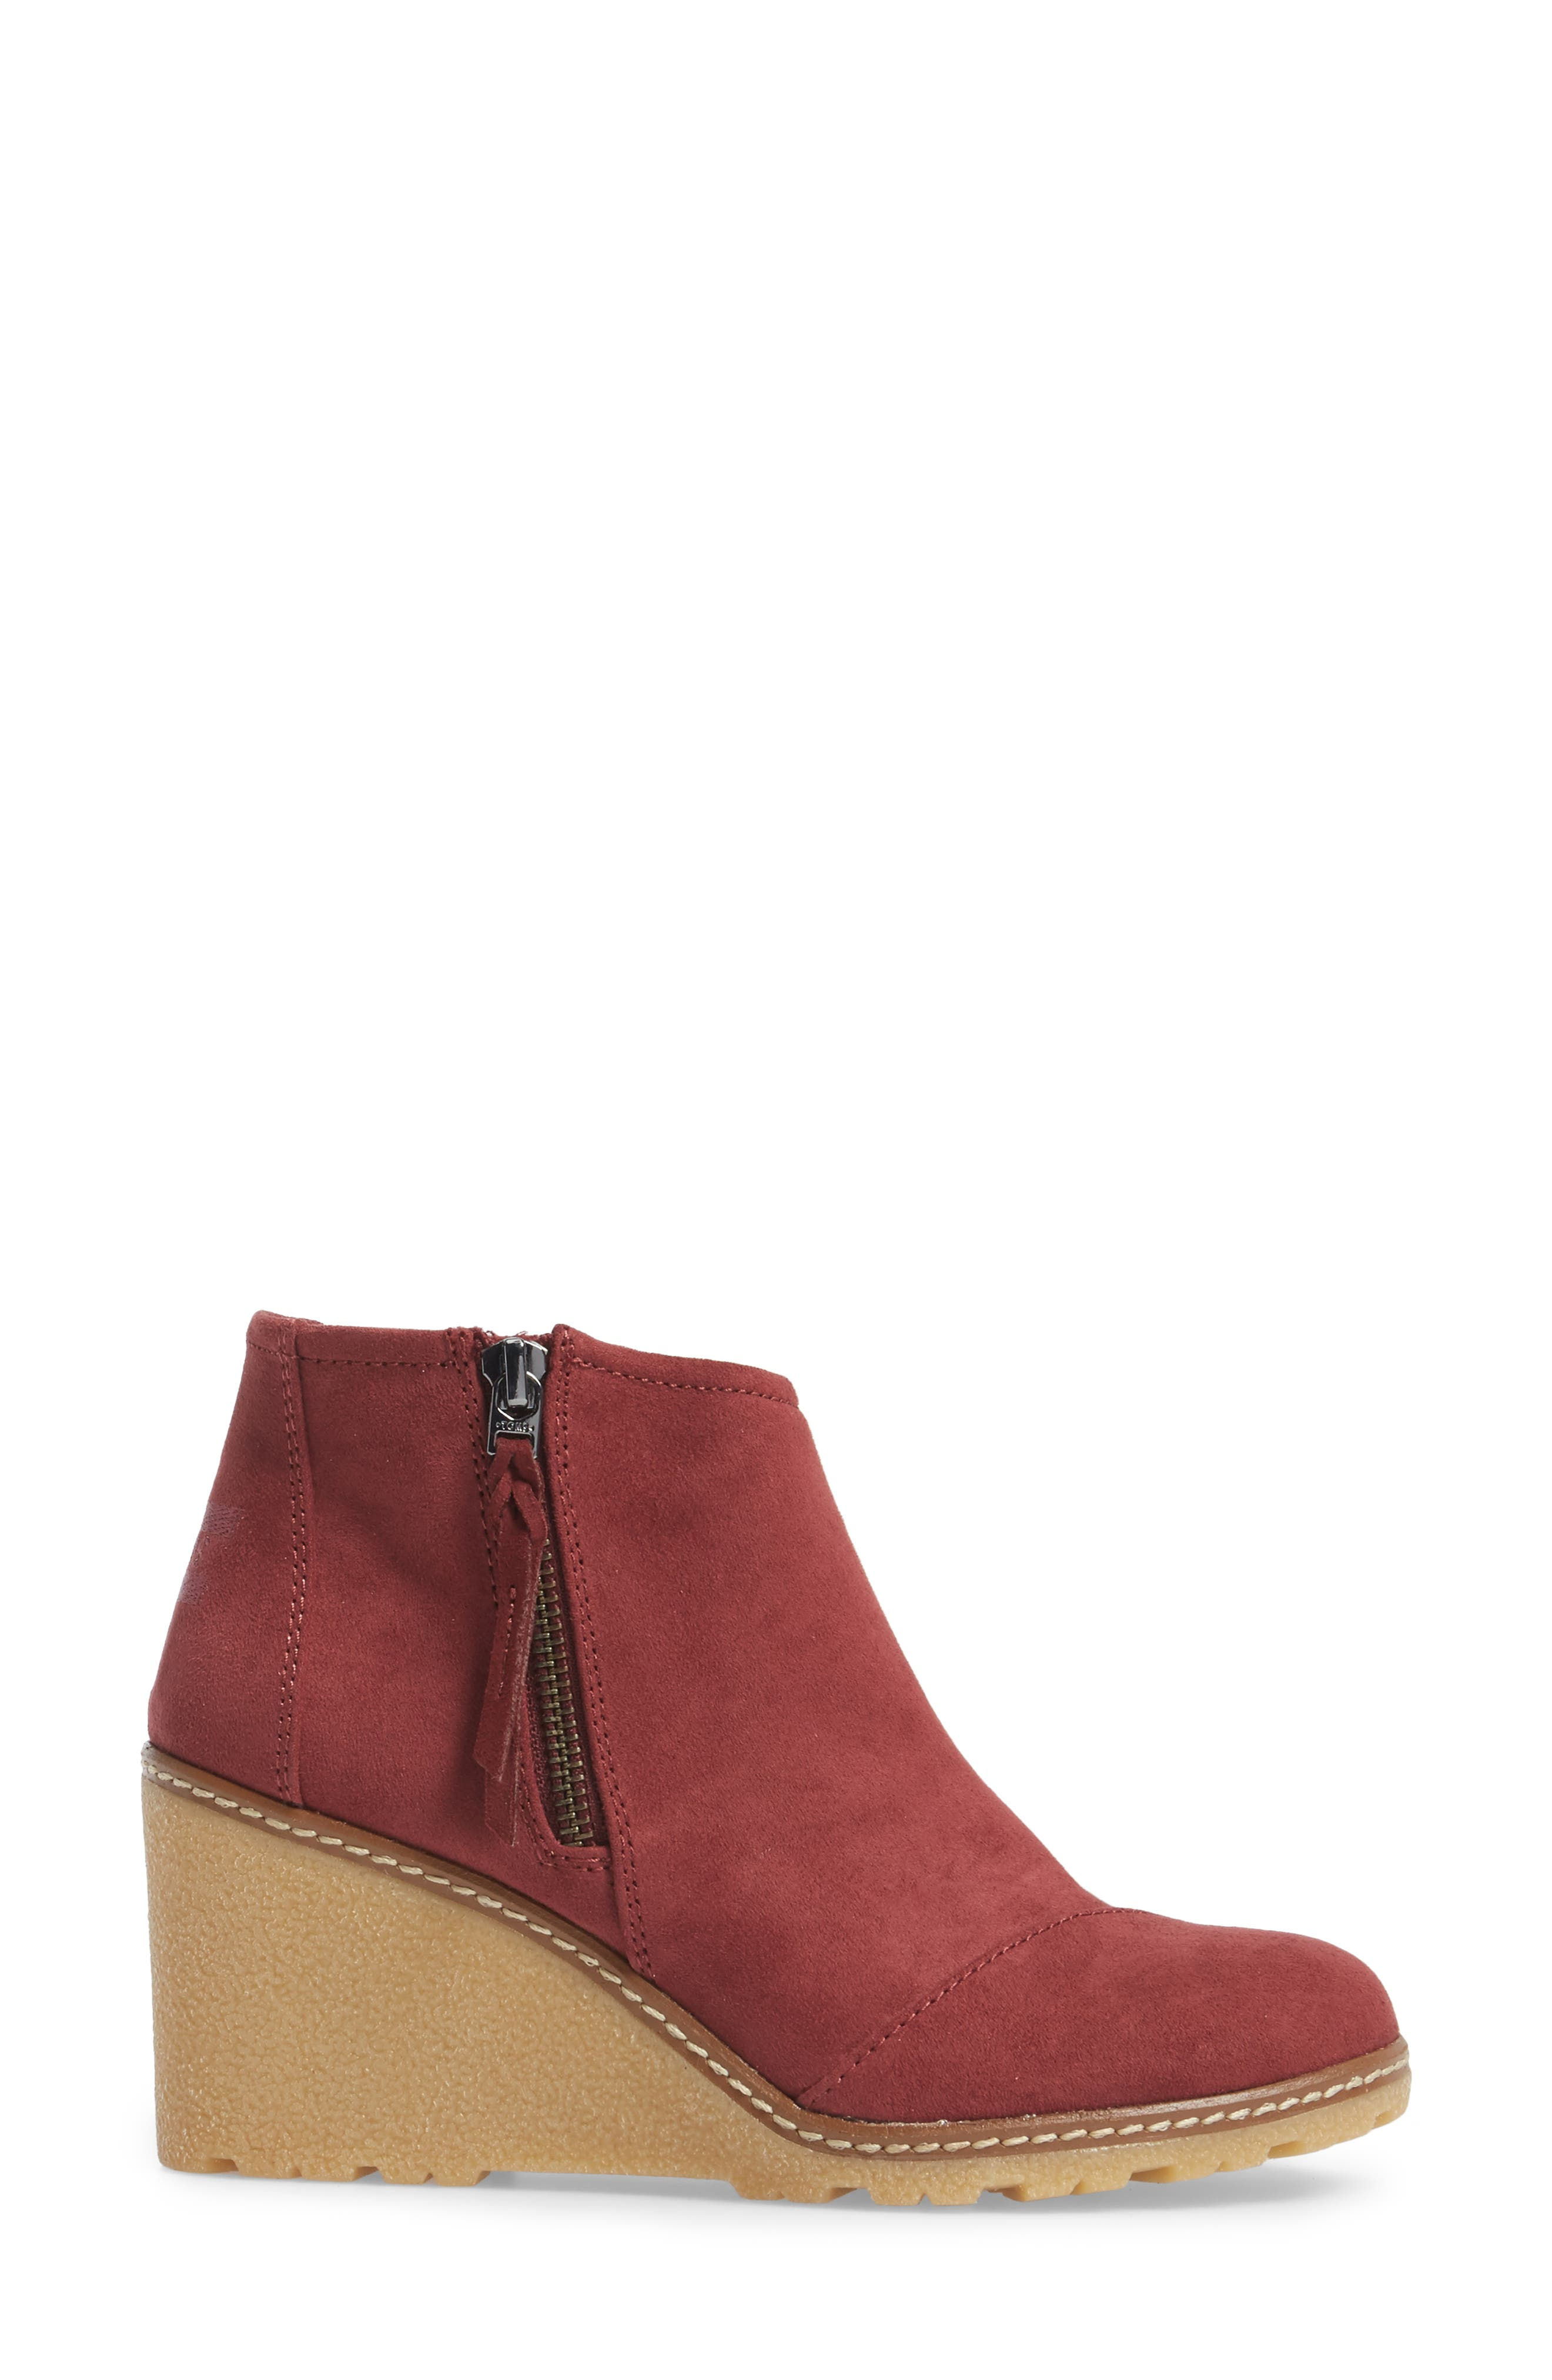 Avery Wedge Bootie,                             Alternate thumbnail 12, color,